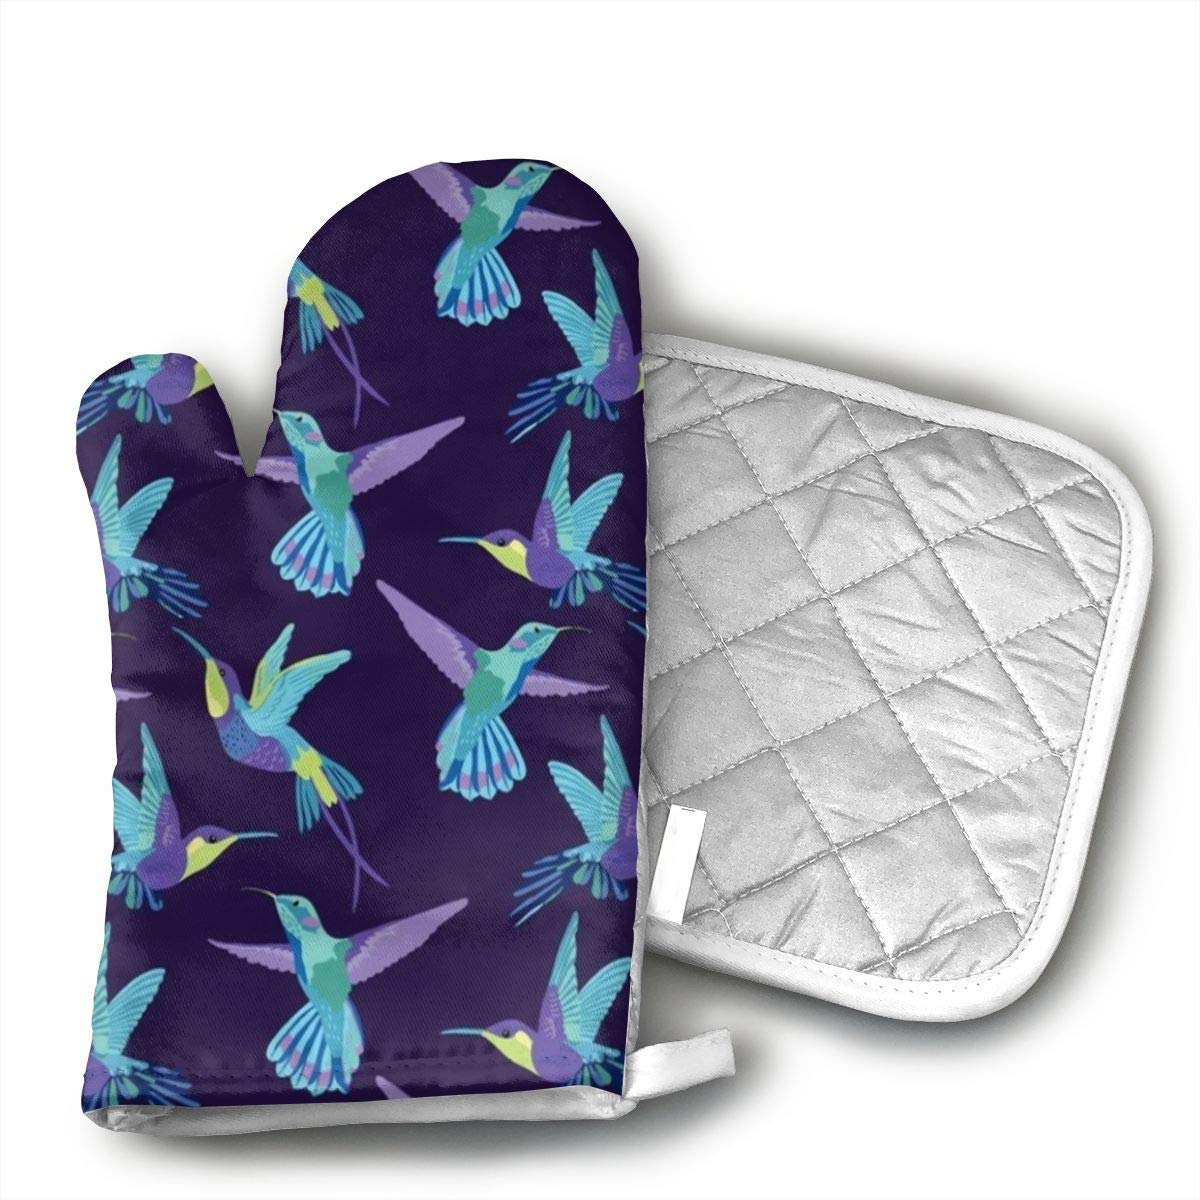 UYRHFS Dark Purple Background - Hummingbird Oven Mitts and Pot Holder Kitchen Set with, Heat Resistant, Oven Gloves and Pot Holders 2pcs Set for BBQ Cooking Baking